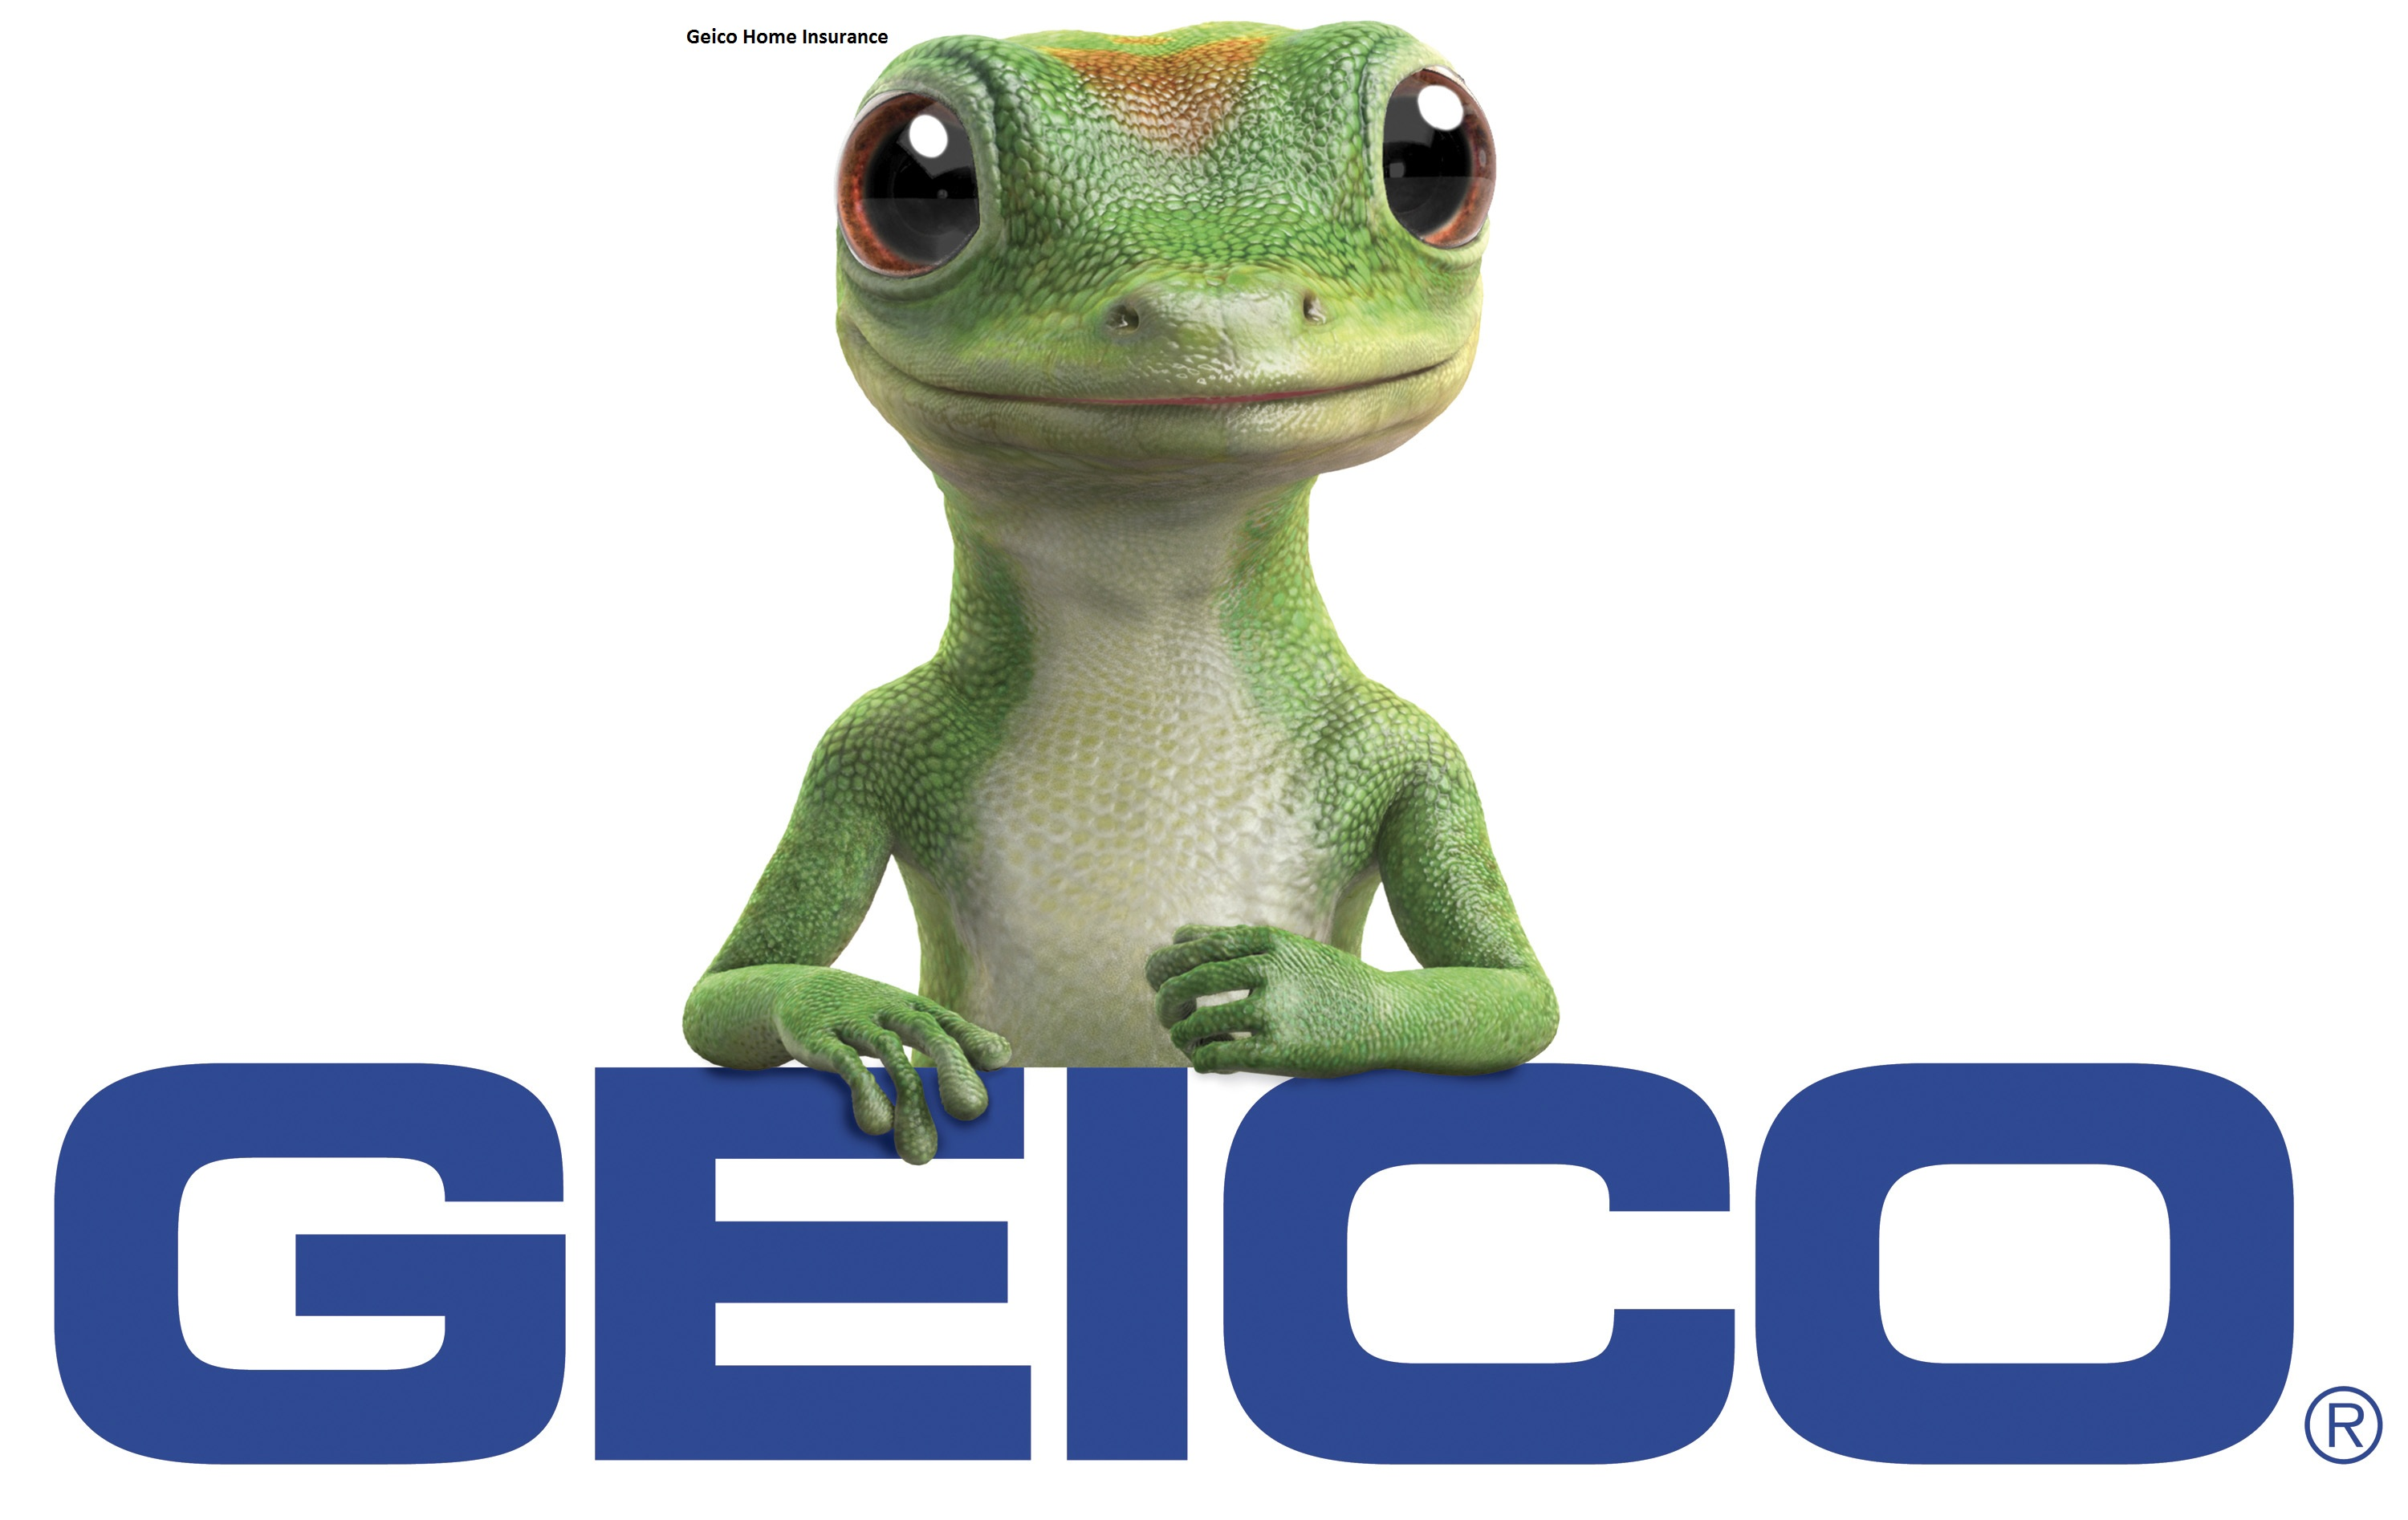 Geico Home Insurance Quote New Geico Home Insurance For Builders Risk And Vacant House